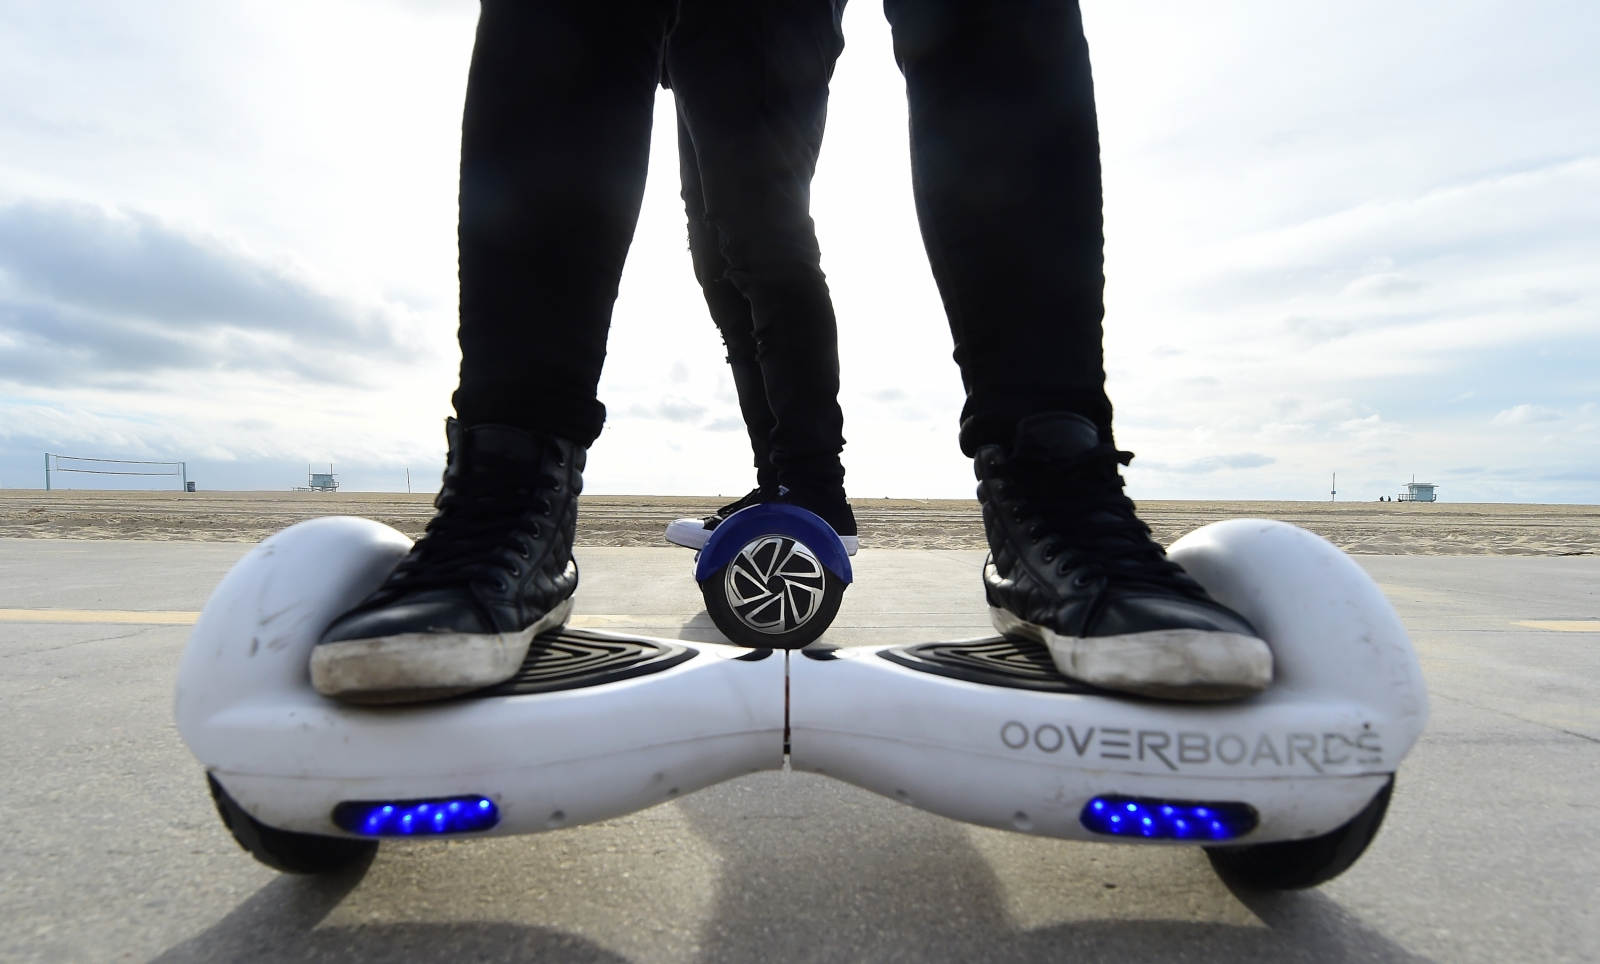 USCPSC recalled 501,000 hoverboards